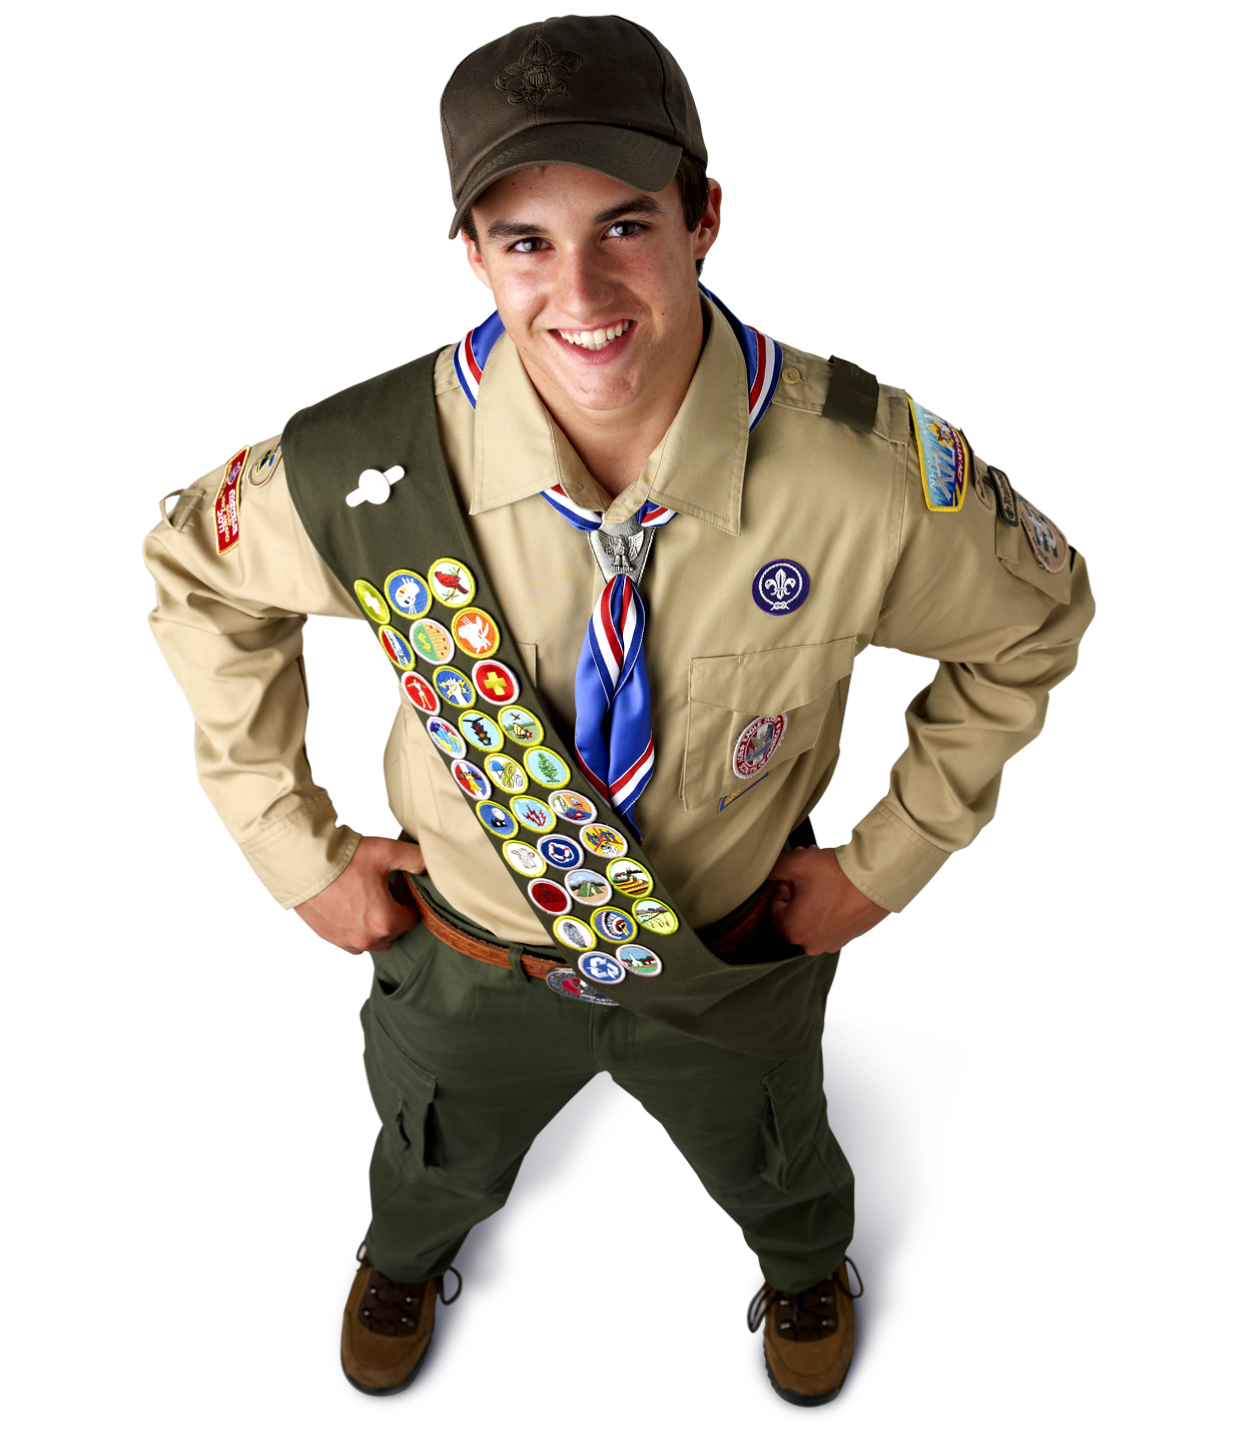 Our Boy Scout Troop 337 is for Boys entering the 6th Grade through 18 years old.  For more info go to www.troop337.com